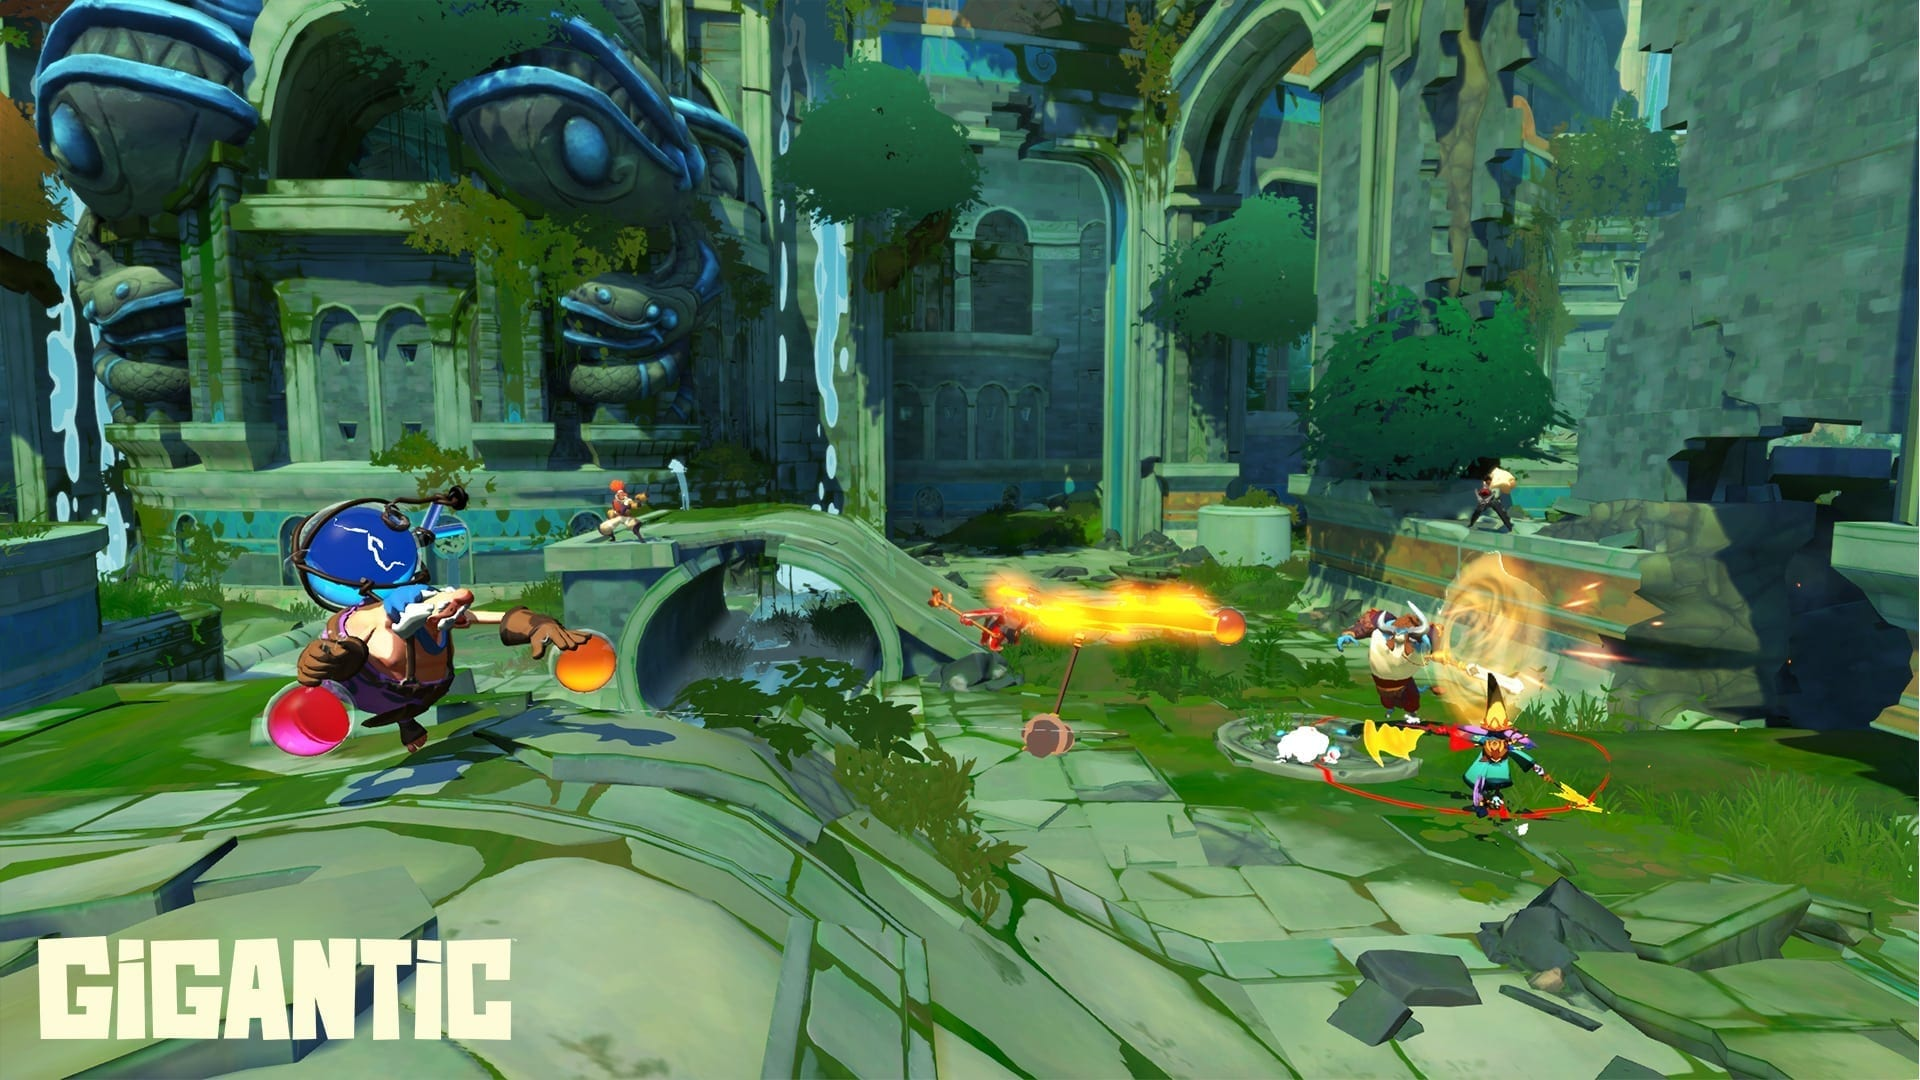 gigantic-closed-beta-screenshot-2